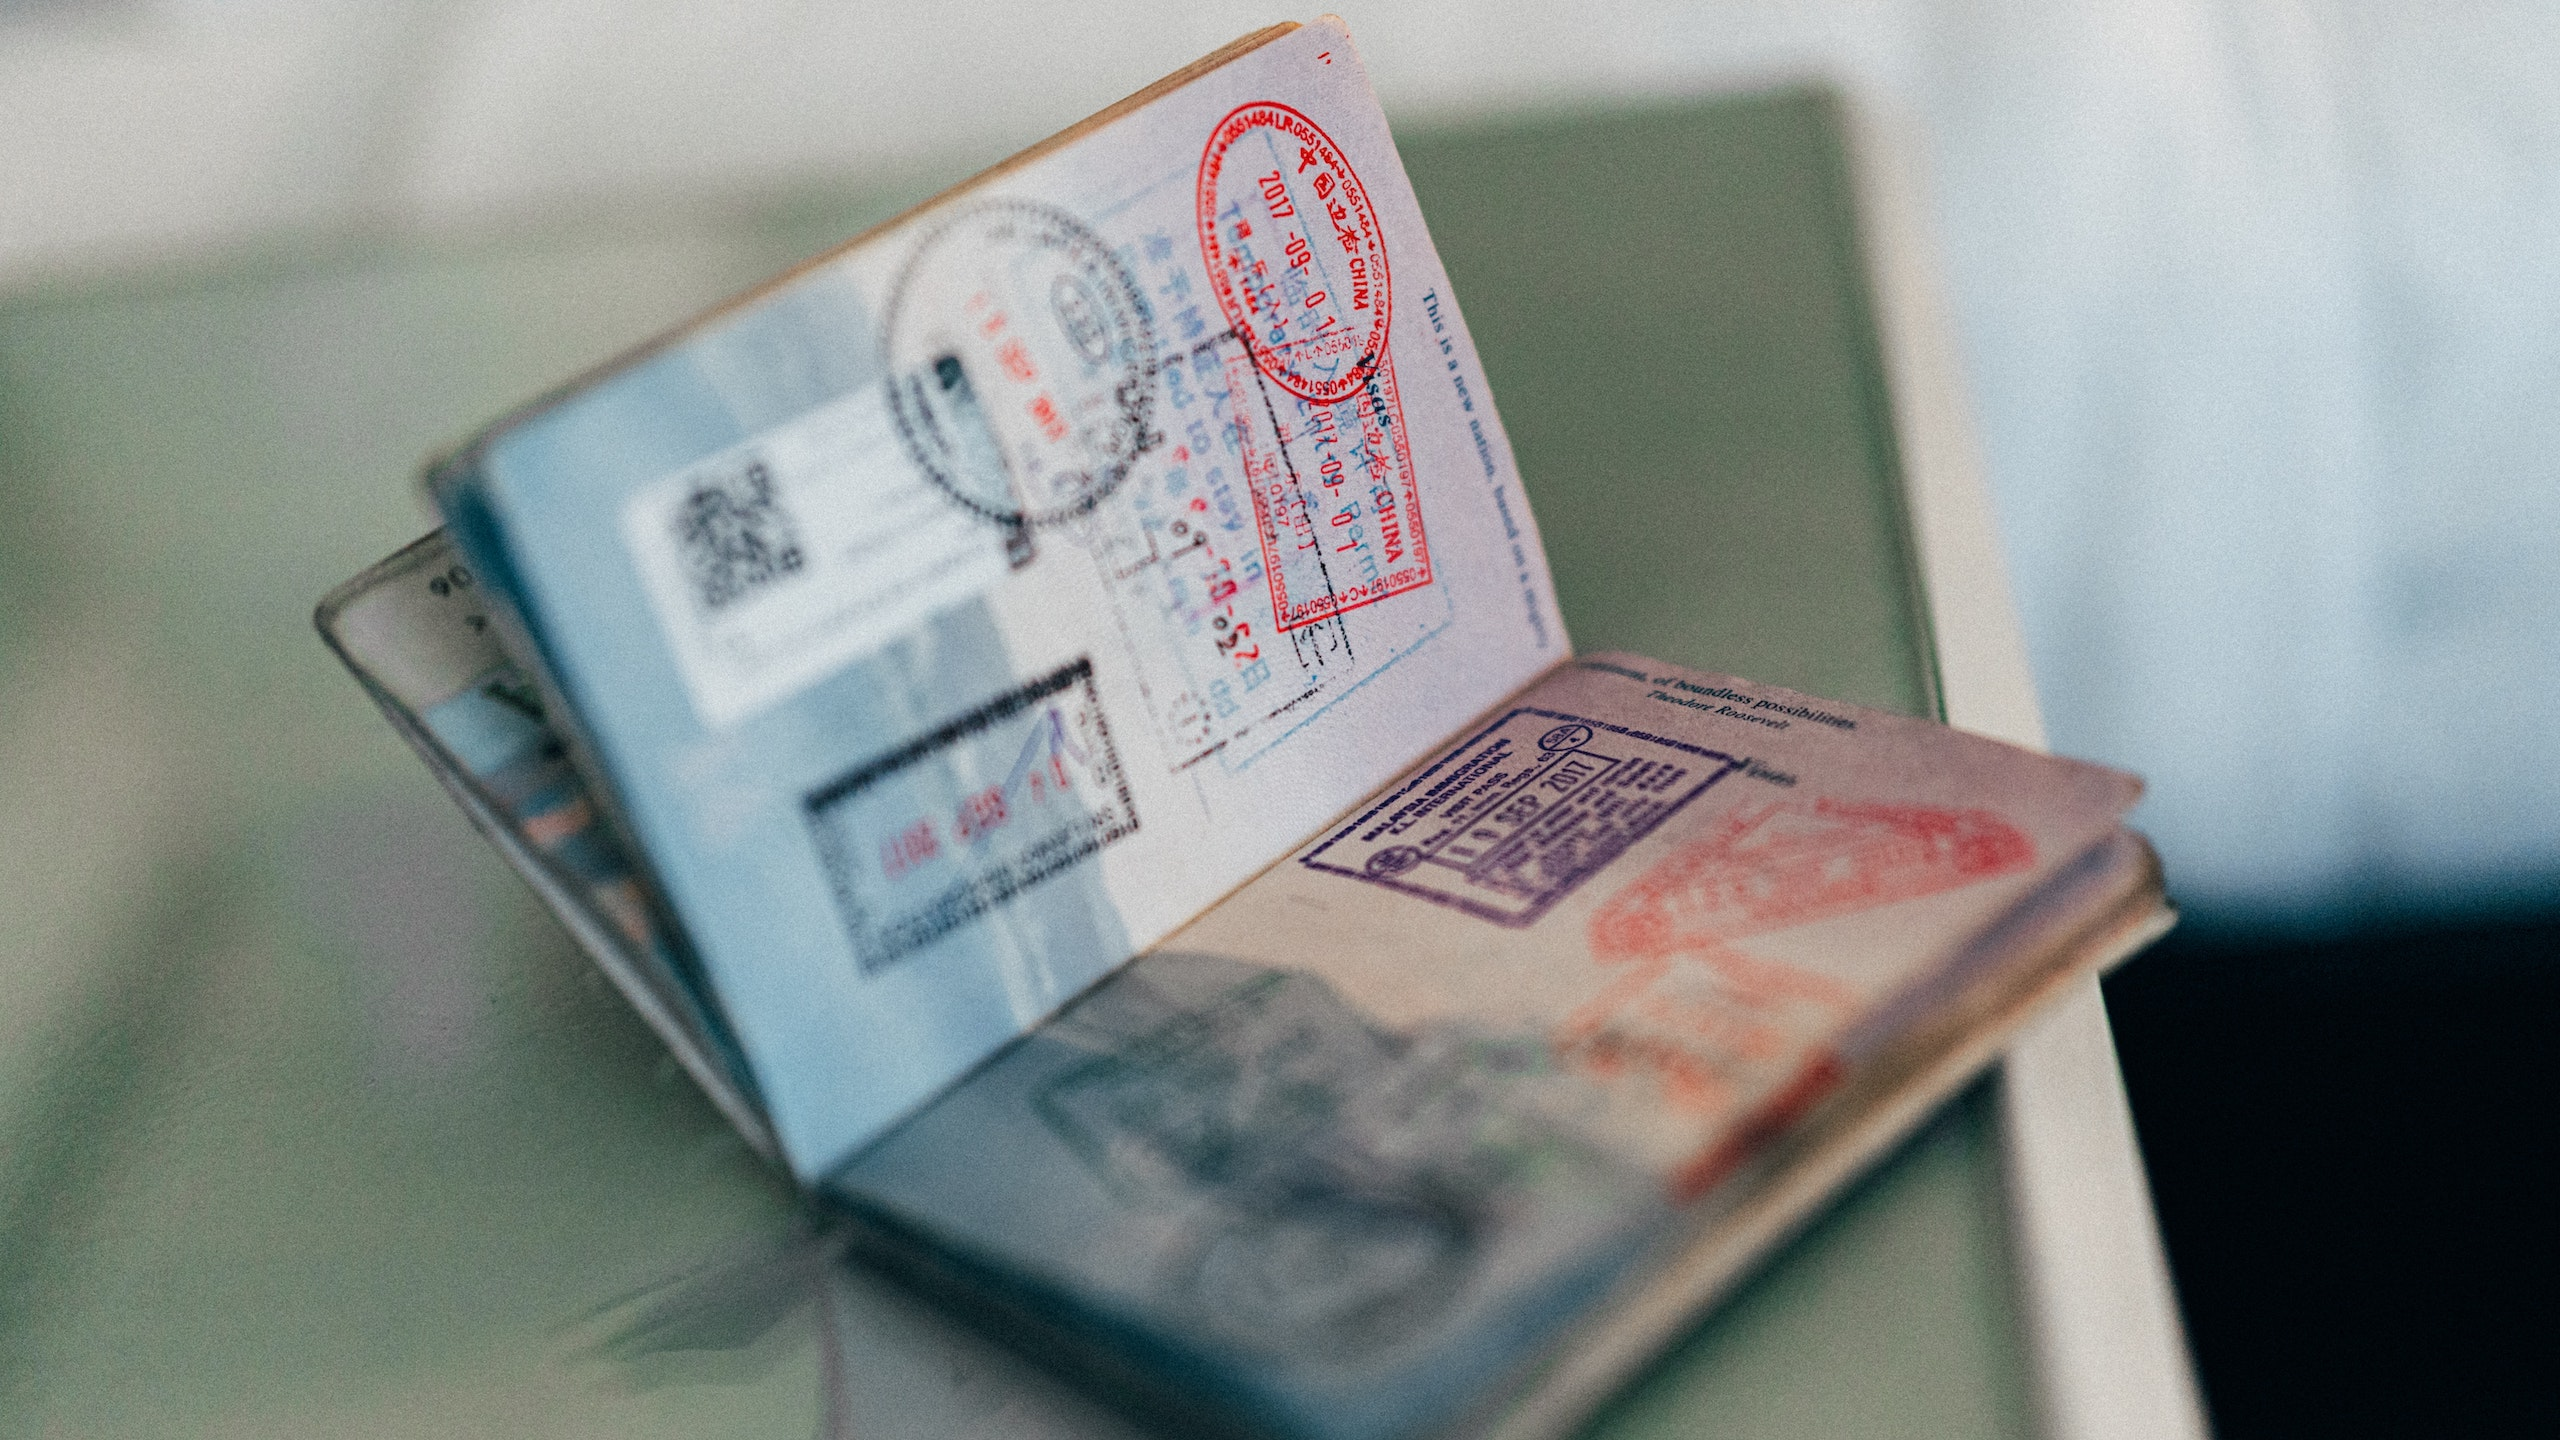 Open passport covered in immigration stampson a table